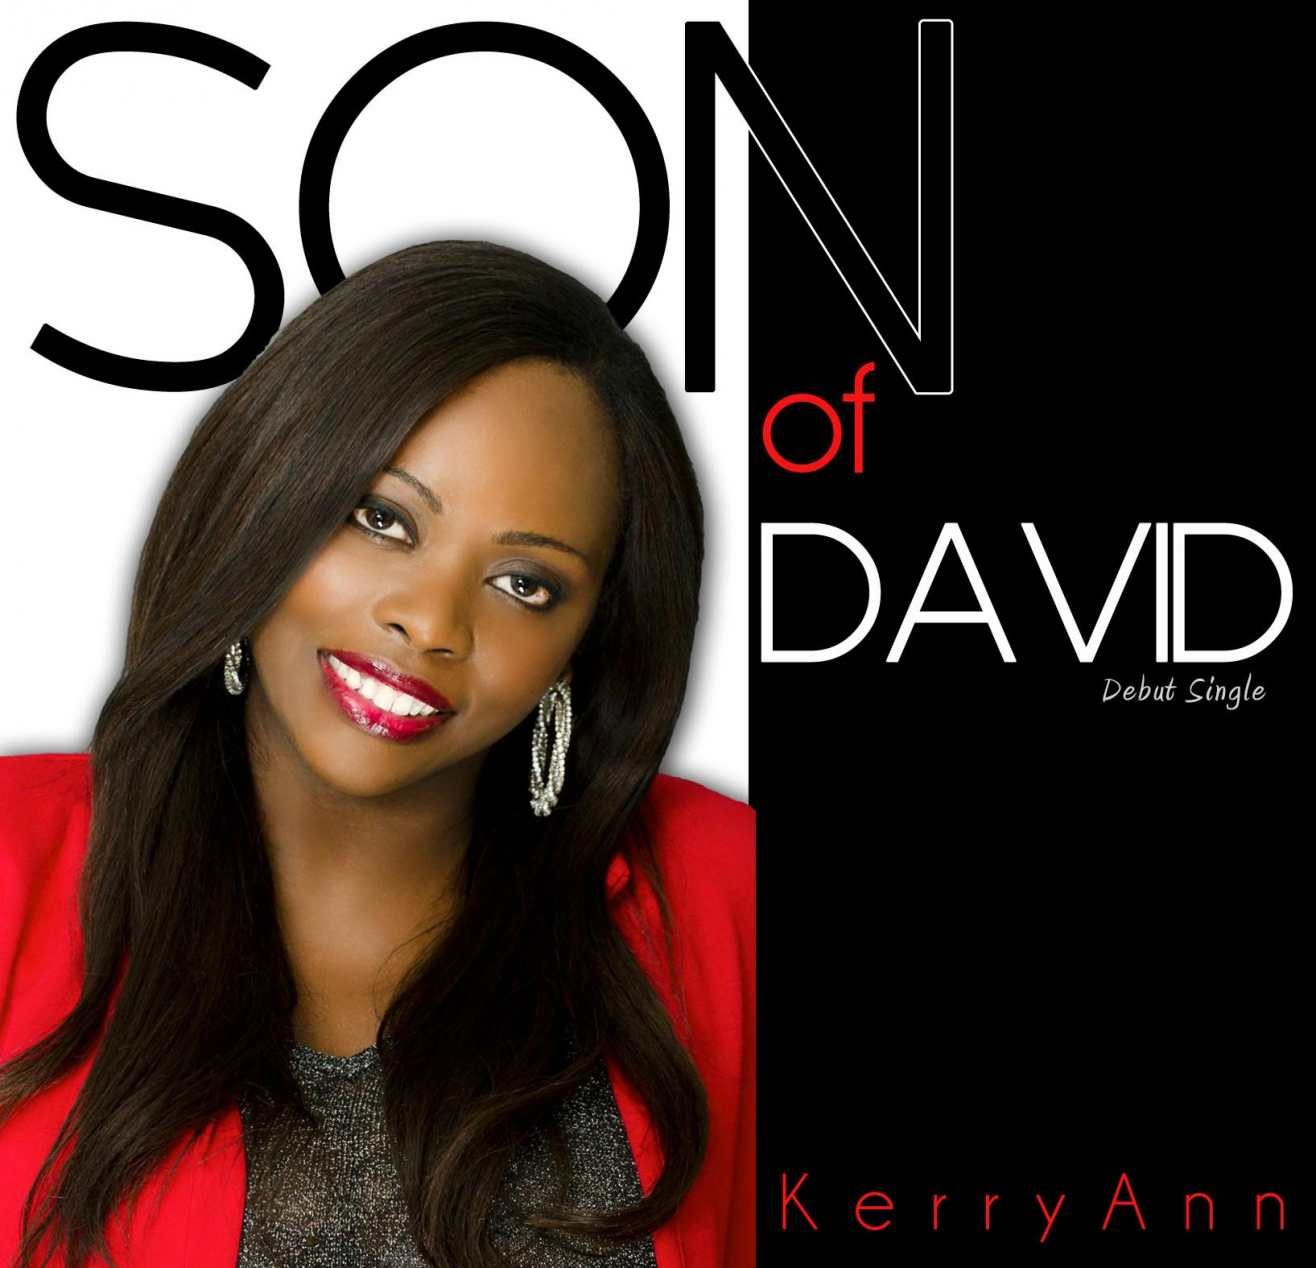 KerryAnn McLean-Debut Single Son of David